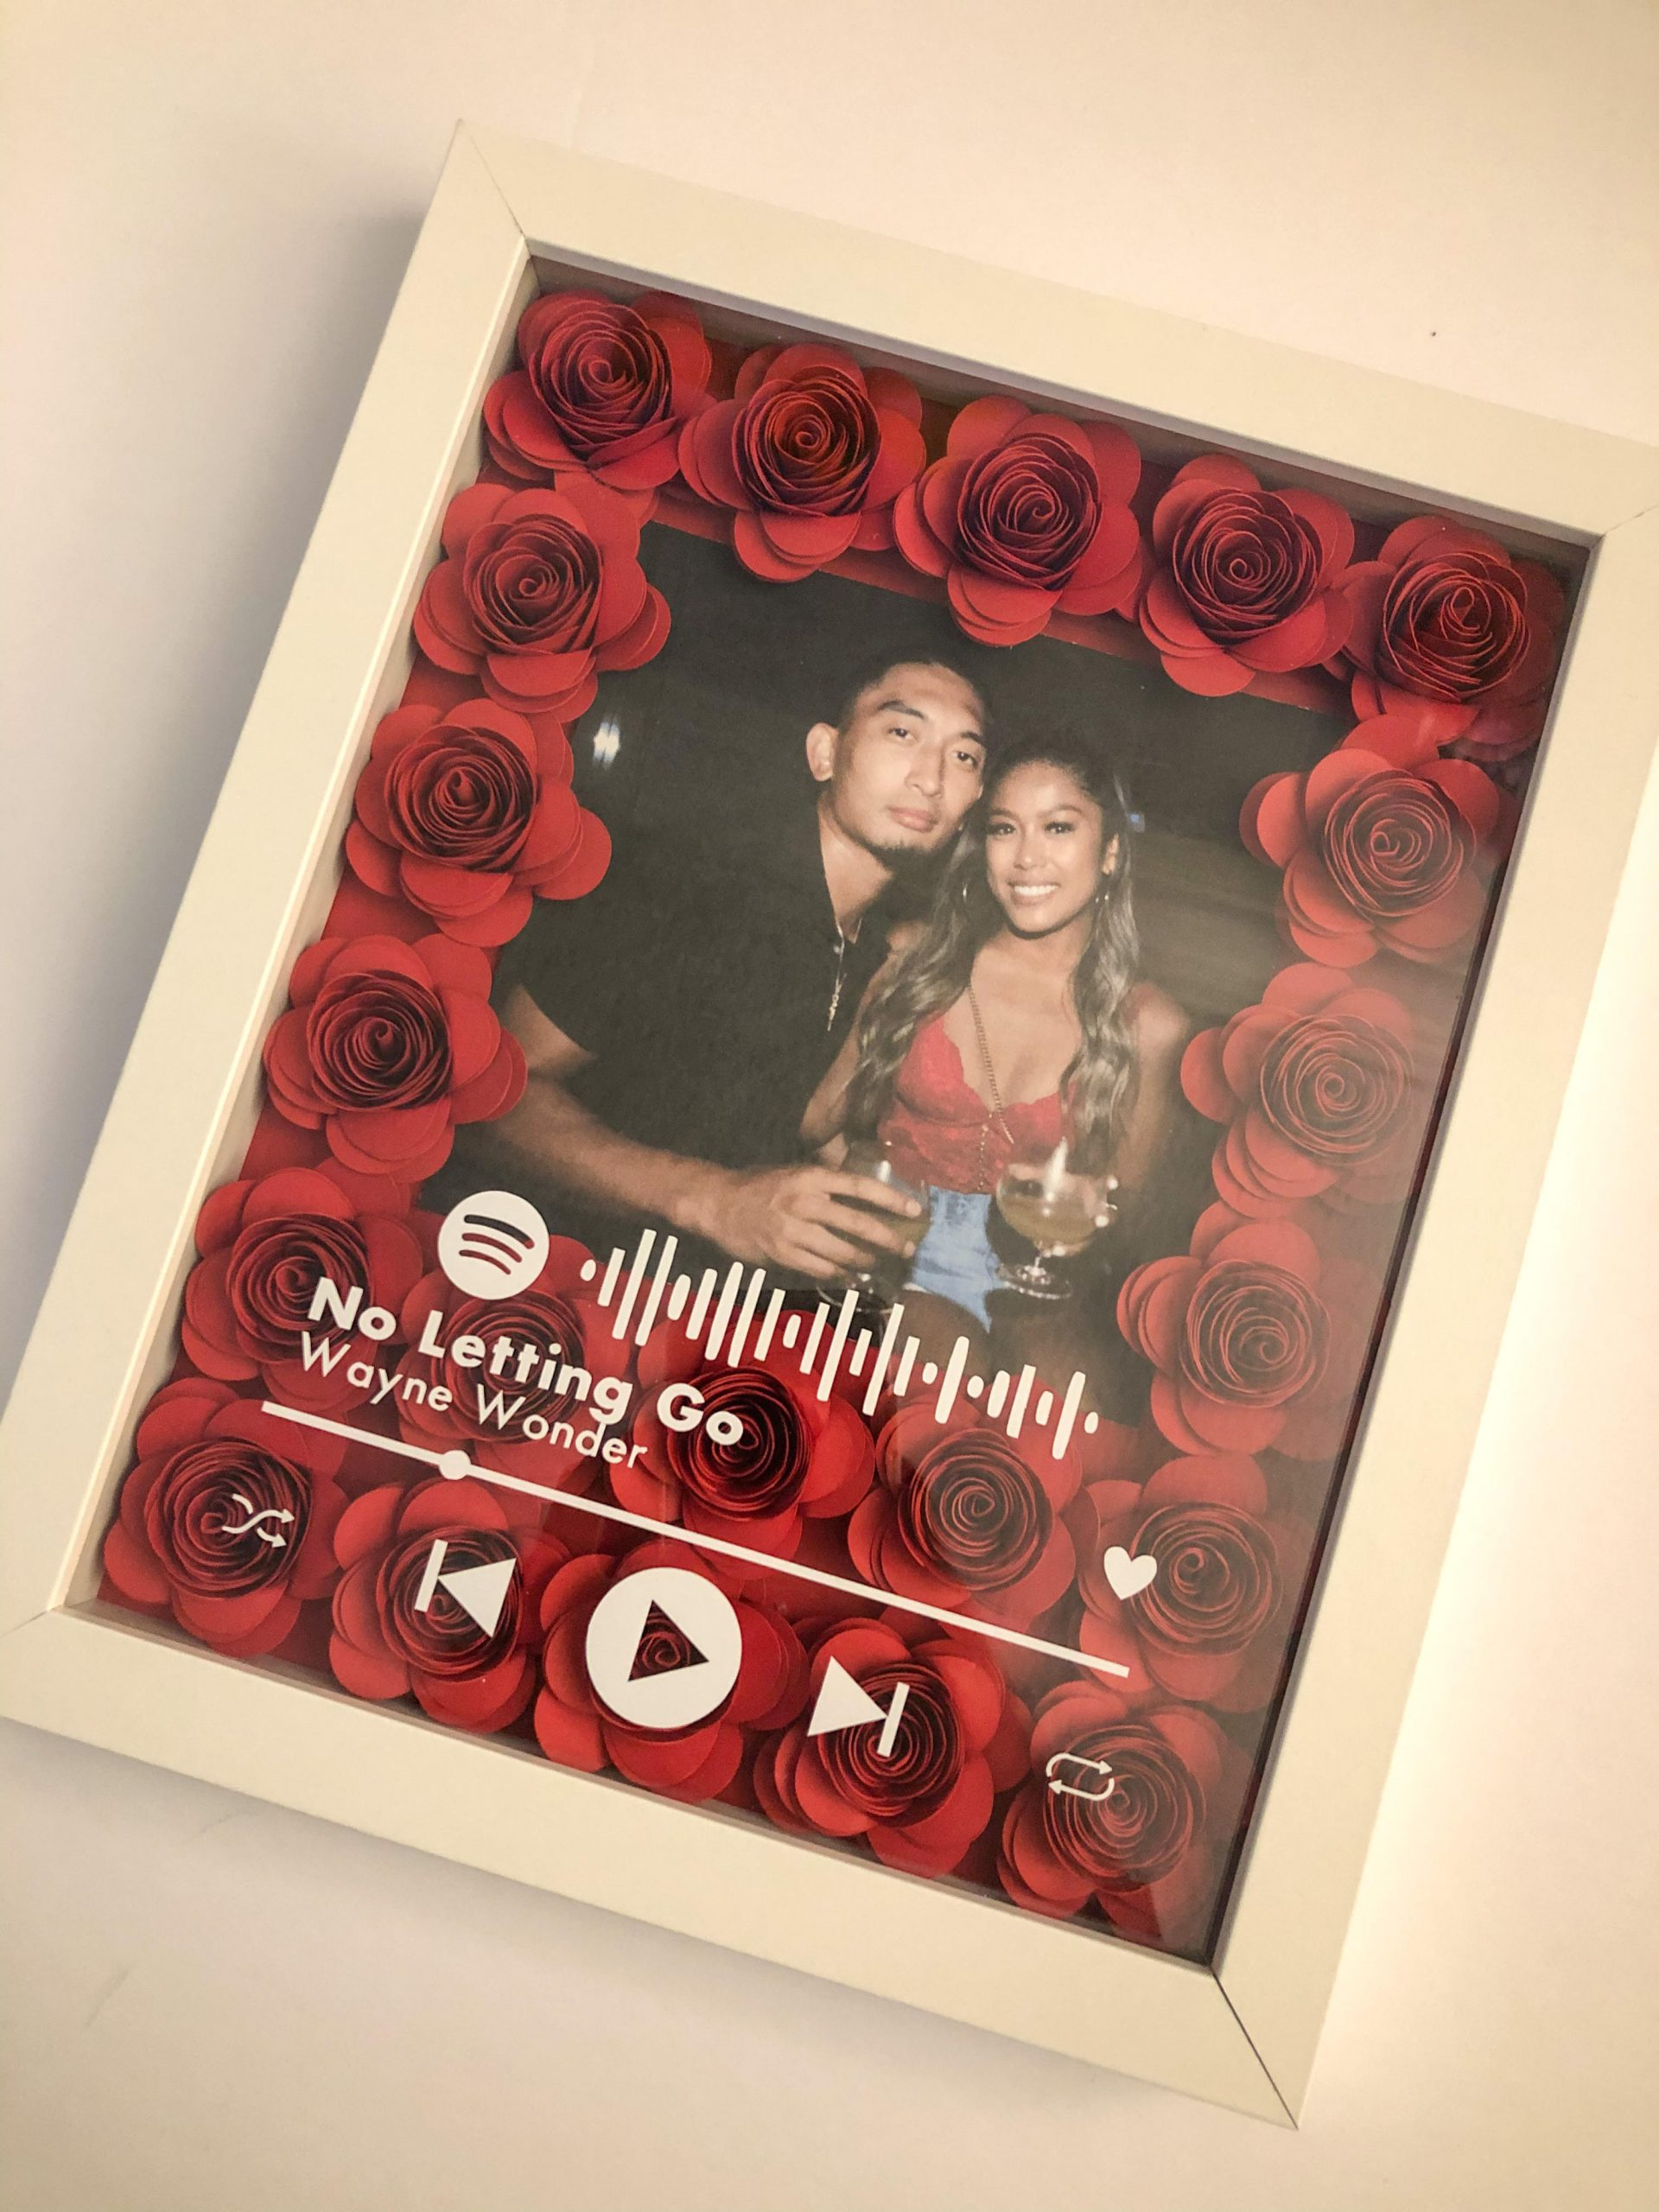 Image of a flower box with a customer's couples photo inside made to look like a Spotify window playing a love song